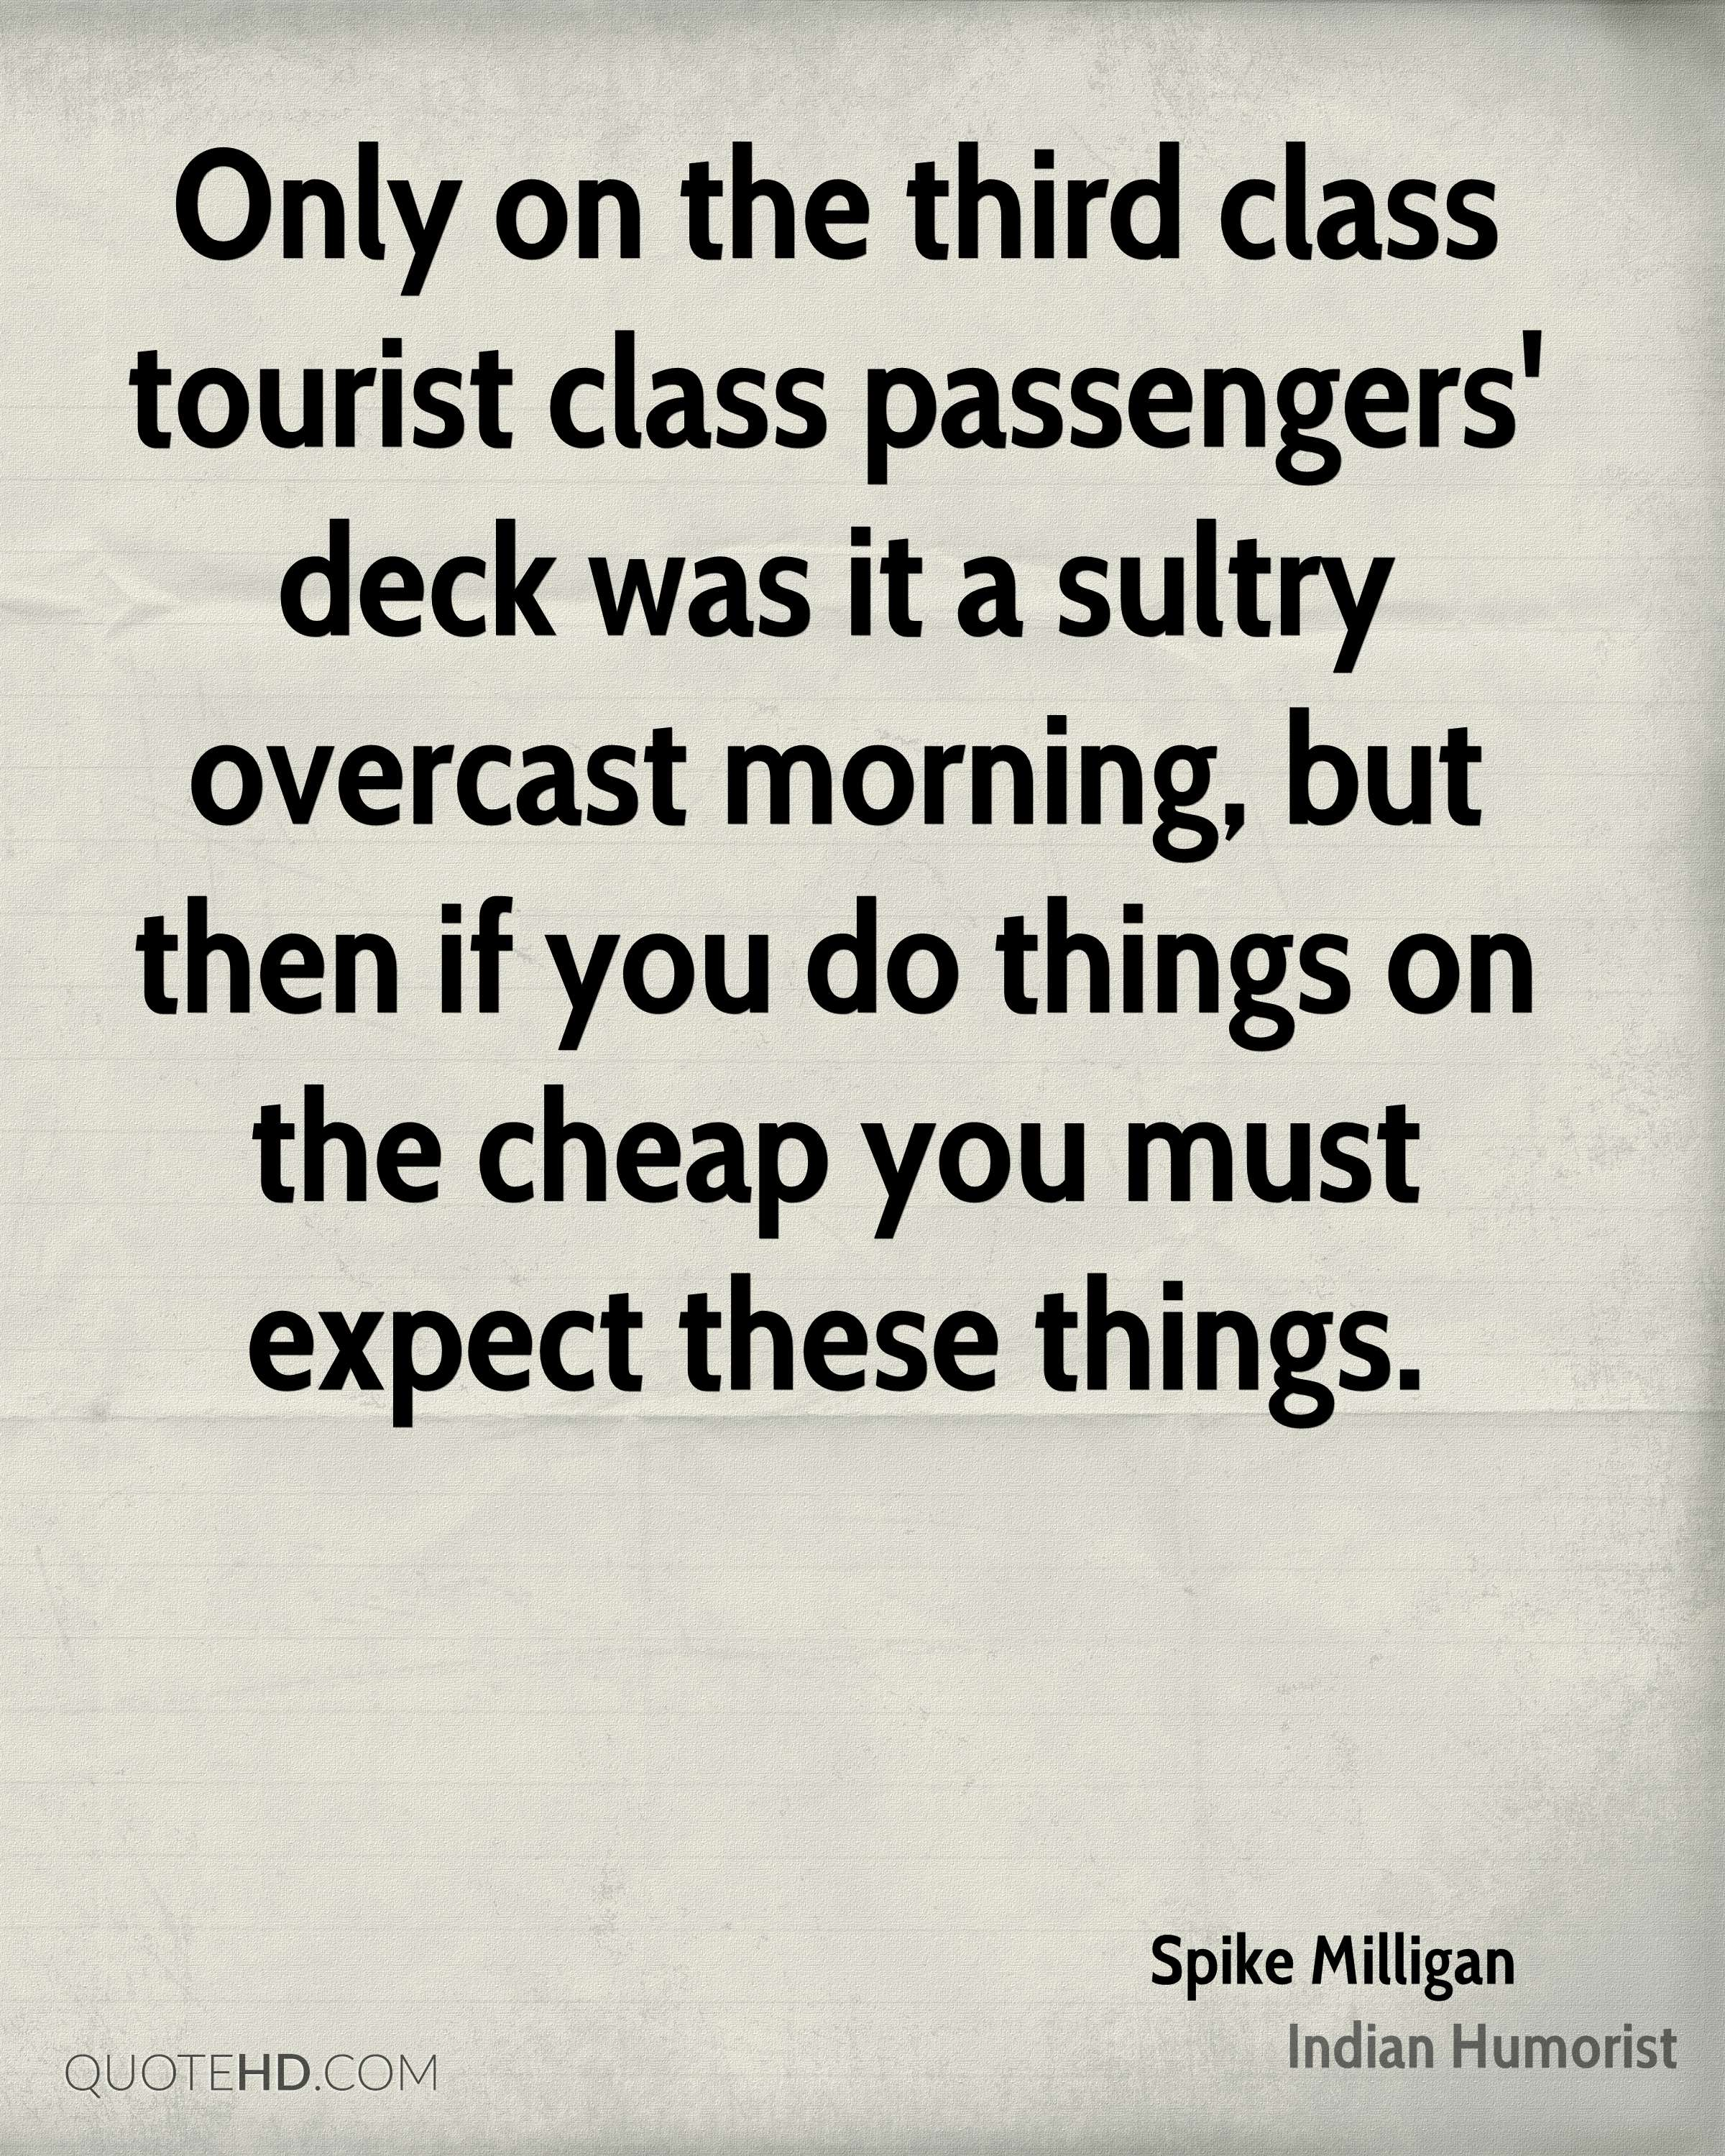 Only on the third class tourist class passengers' deck was it a sultry overcast morning, but then if you do things on the cheap you must expect these things.